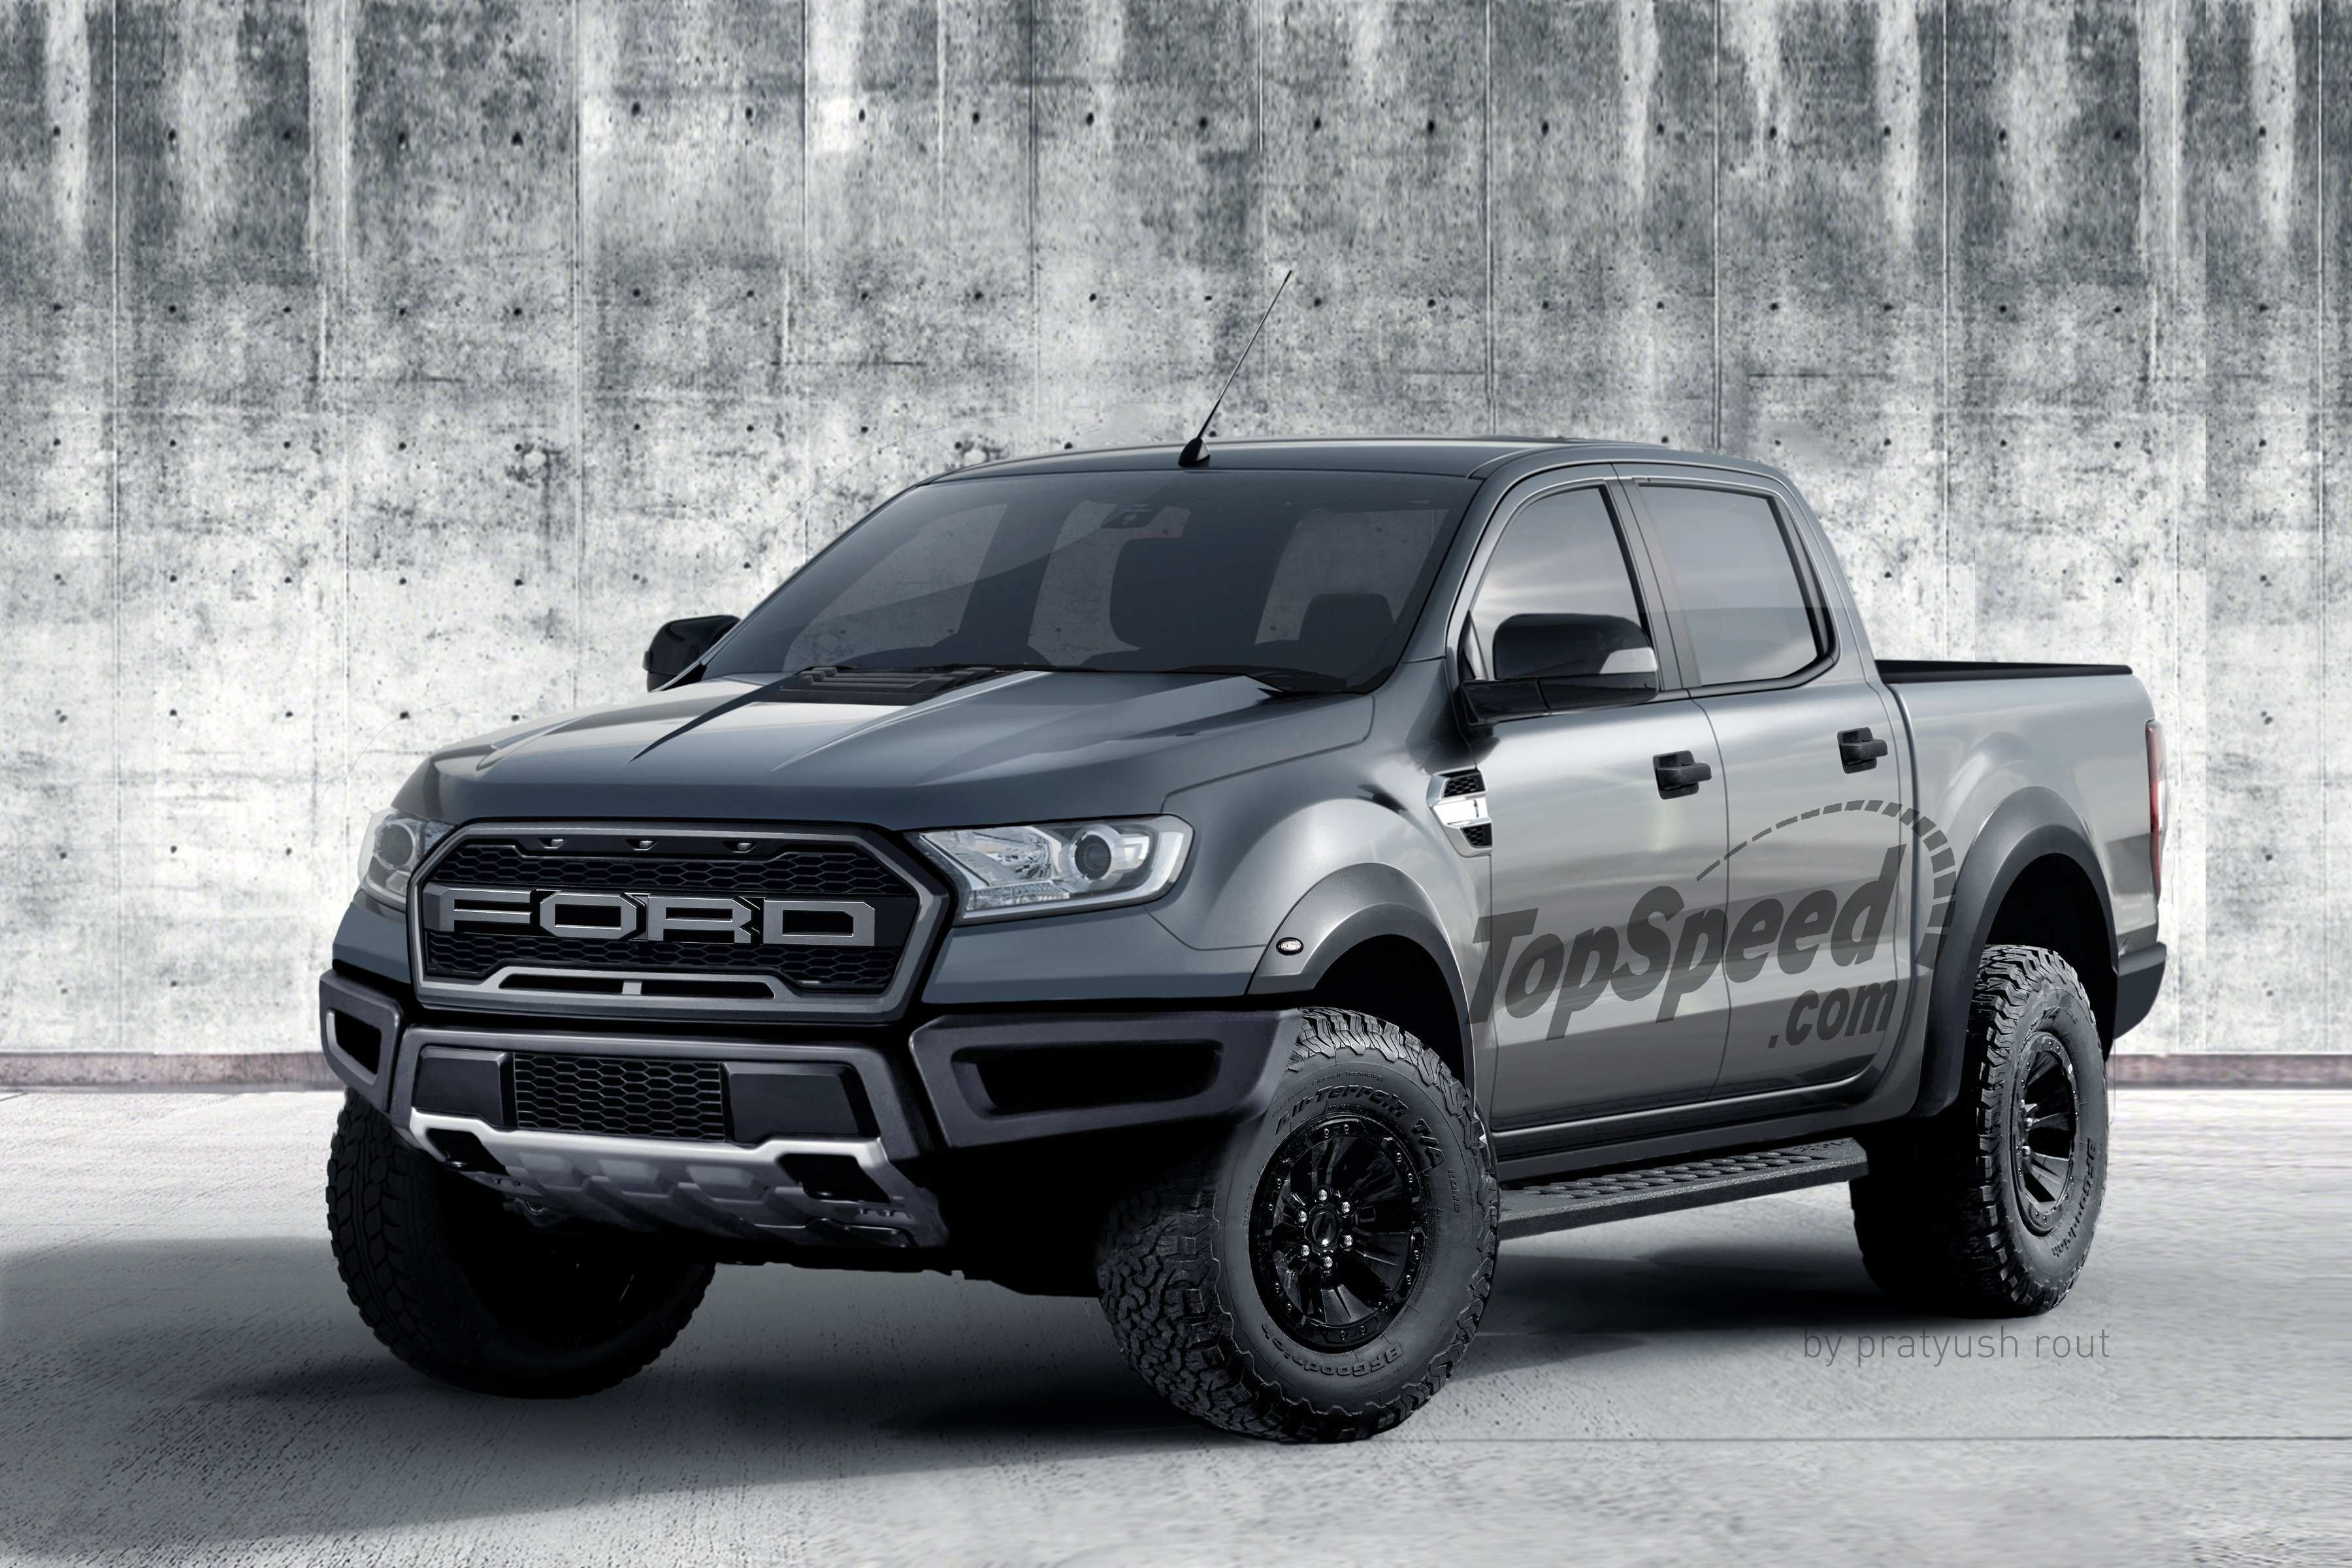 72 The Best 2020 Ford Ranger Wildtrak New Model And Performance